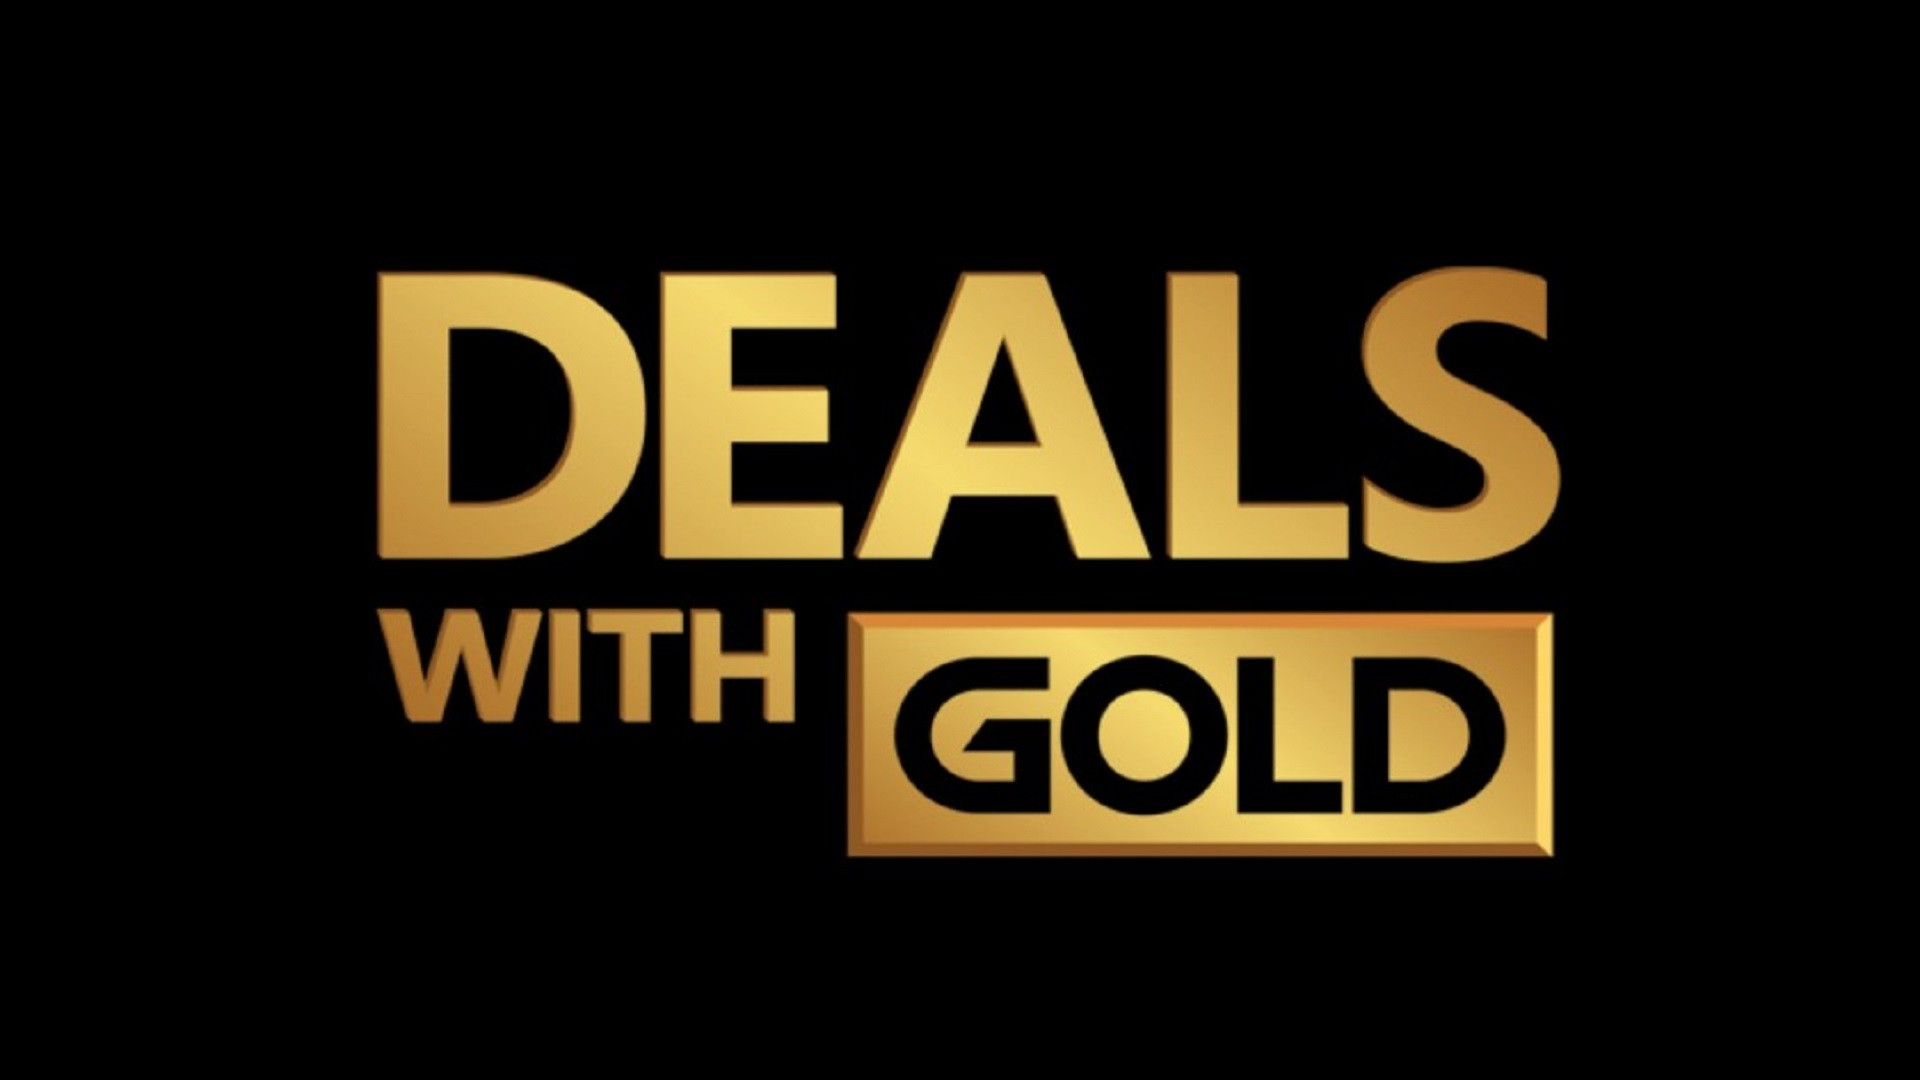 Deals with Gold semaine 10